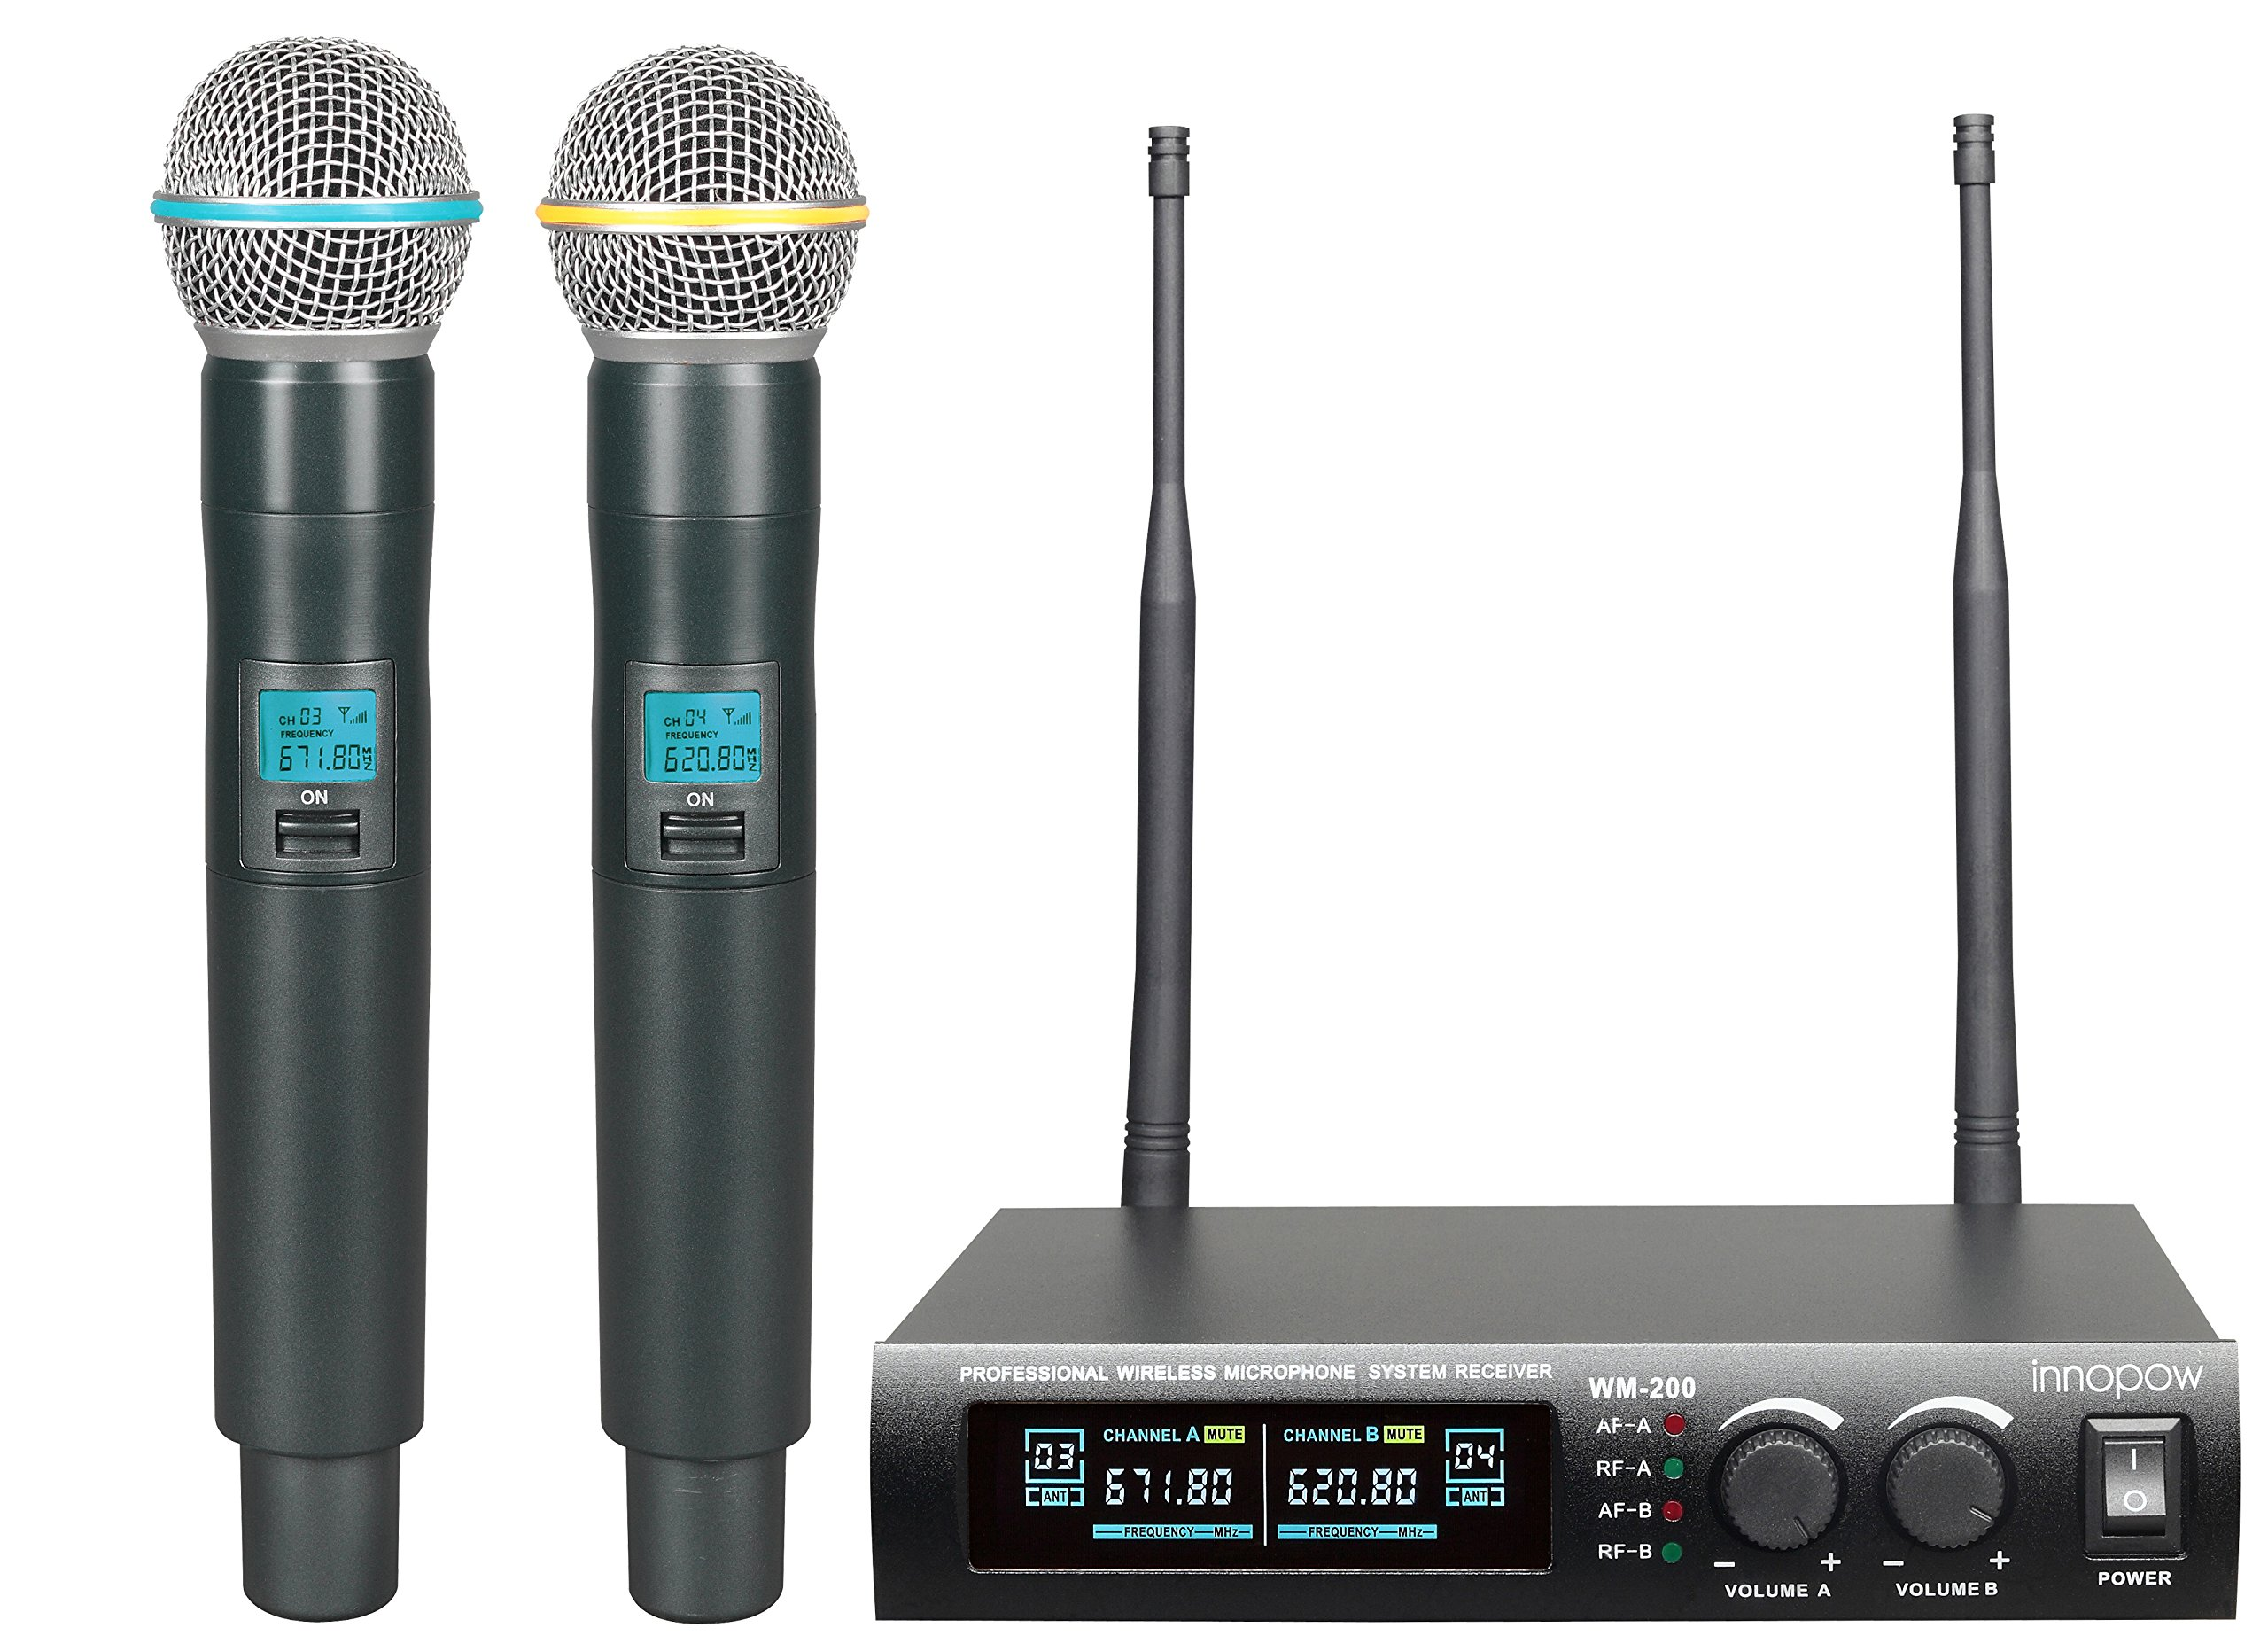 innopow Metal Dual UHF Wireless Microphone System,inp Metal Cordless Mic set, Long Distance 150-200Ft ,16 Hours Continuous Use for Family Party,Church,Small karaoke Night (WM200)